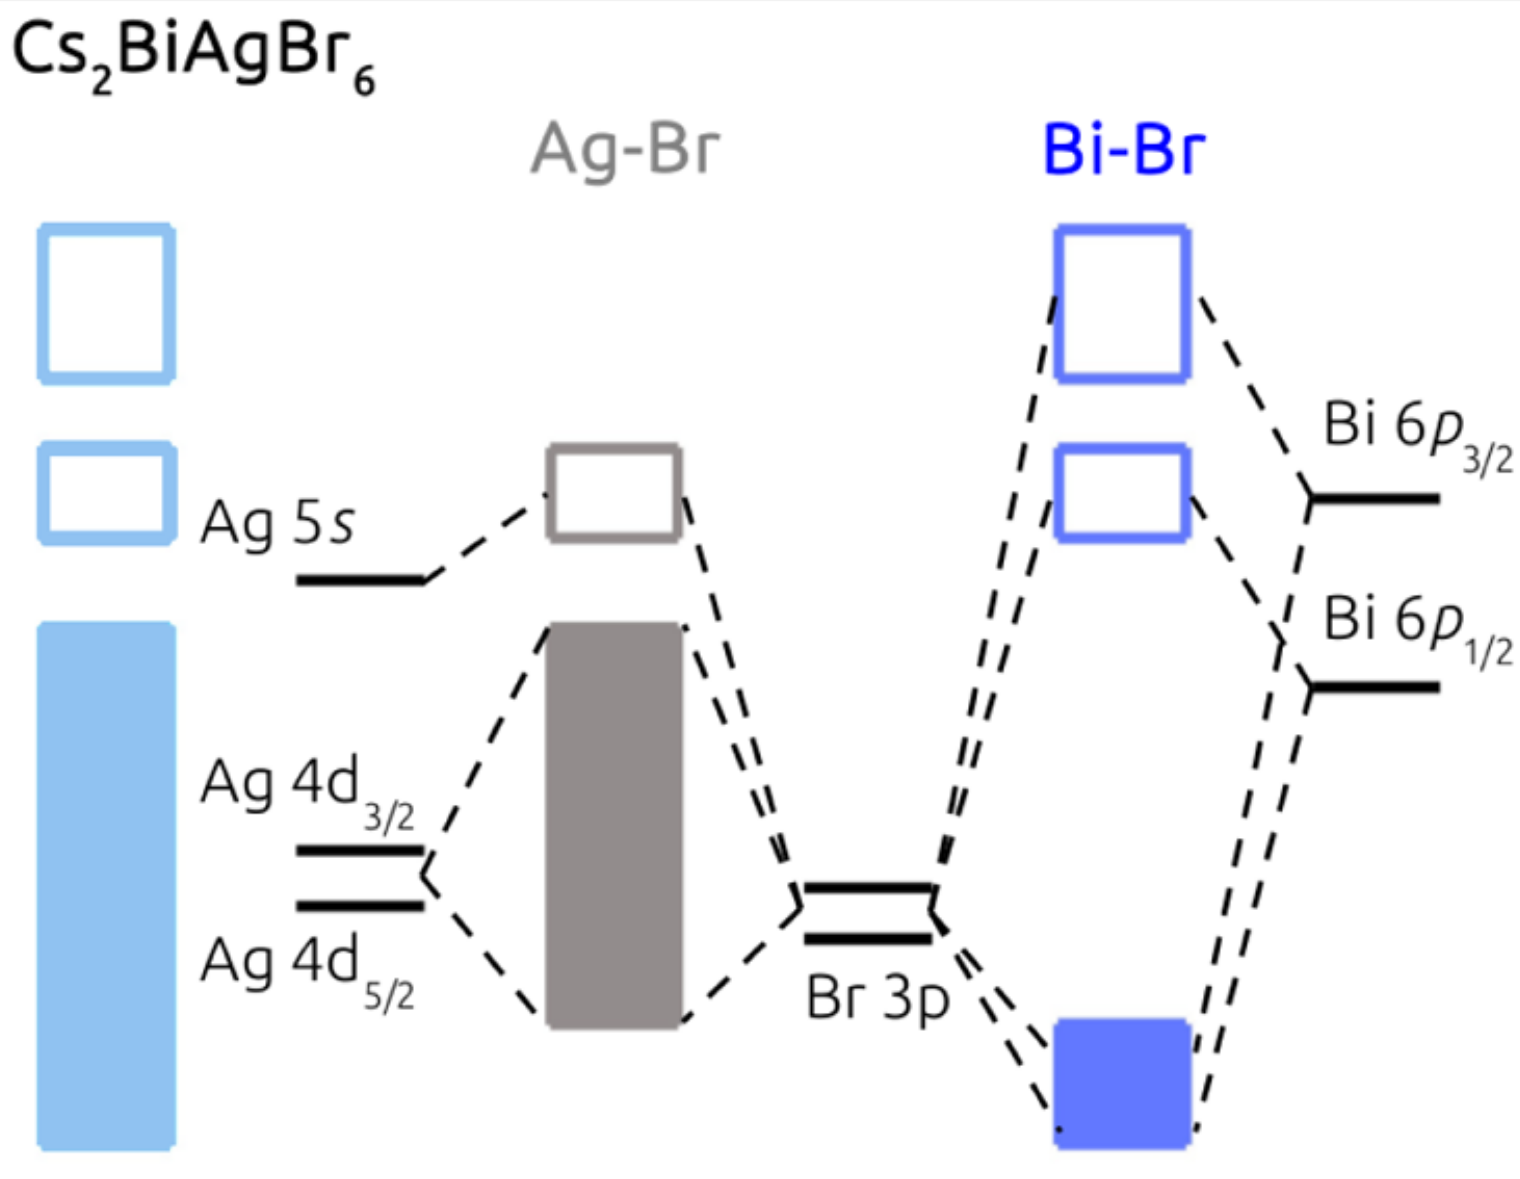 Band gaps of the lead-free halide double perovskites Cs2BiAgCl6 and Cs2BiAgBr6 from theory and experiment